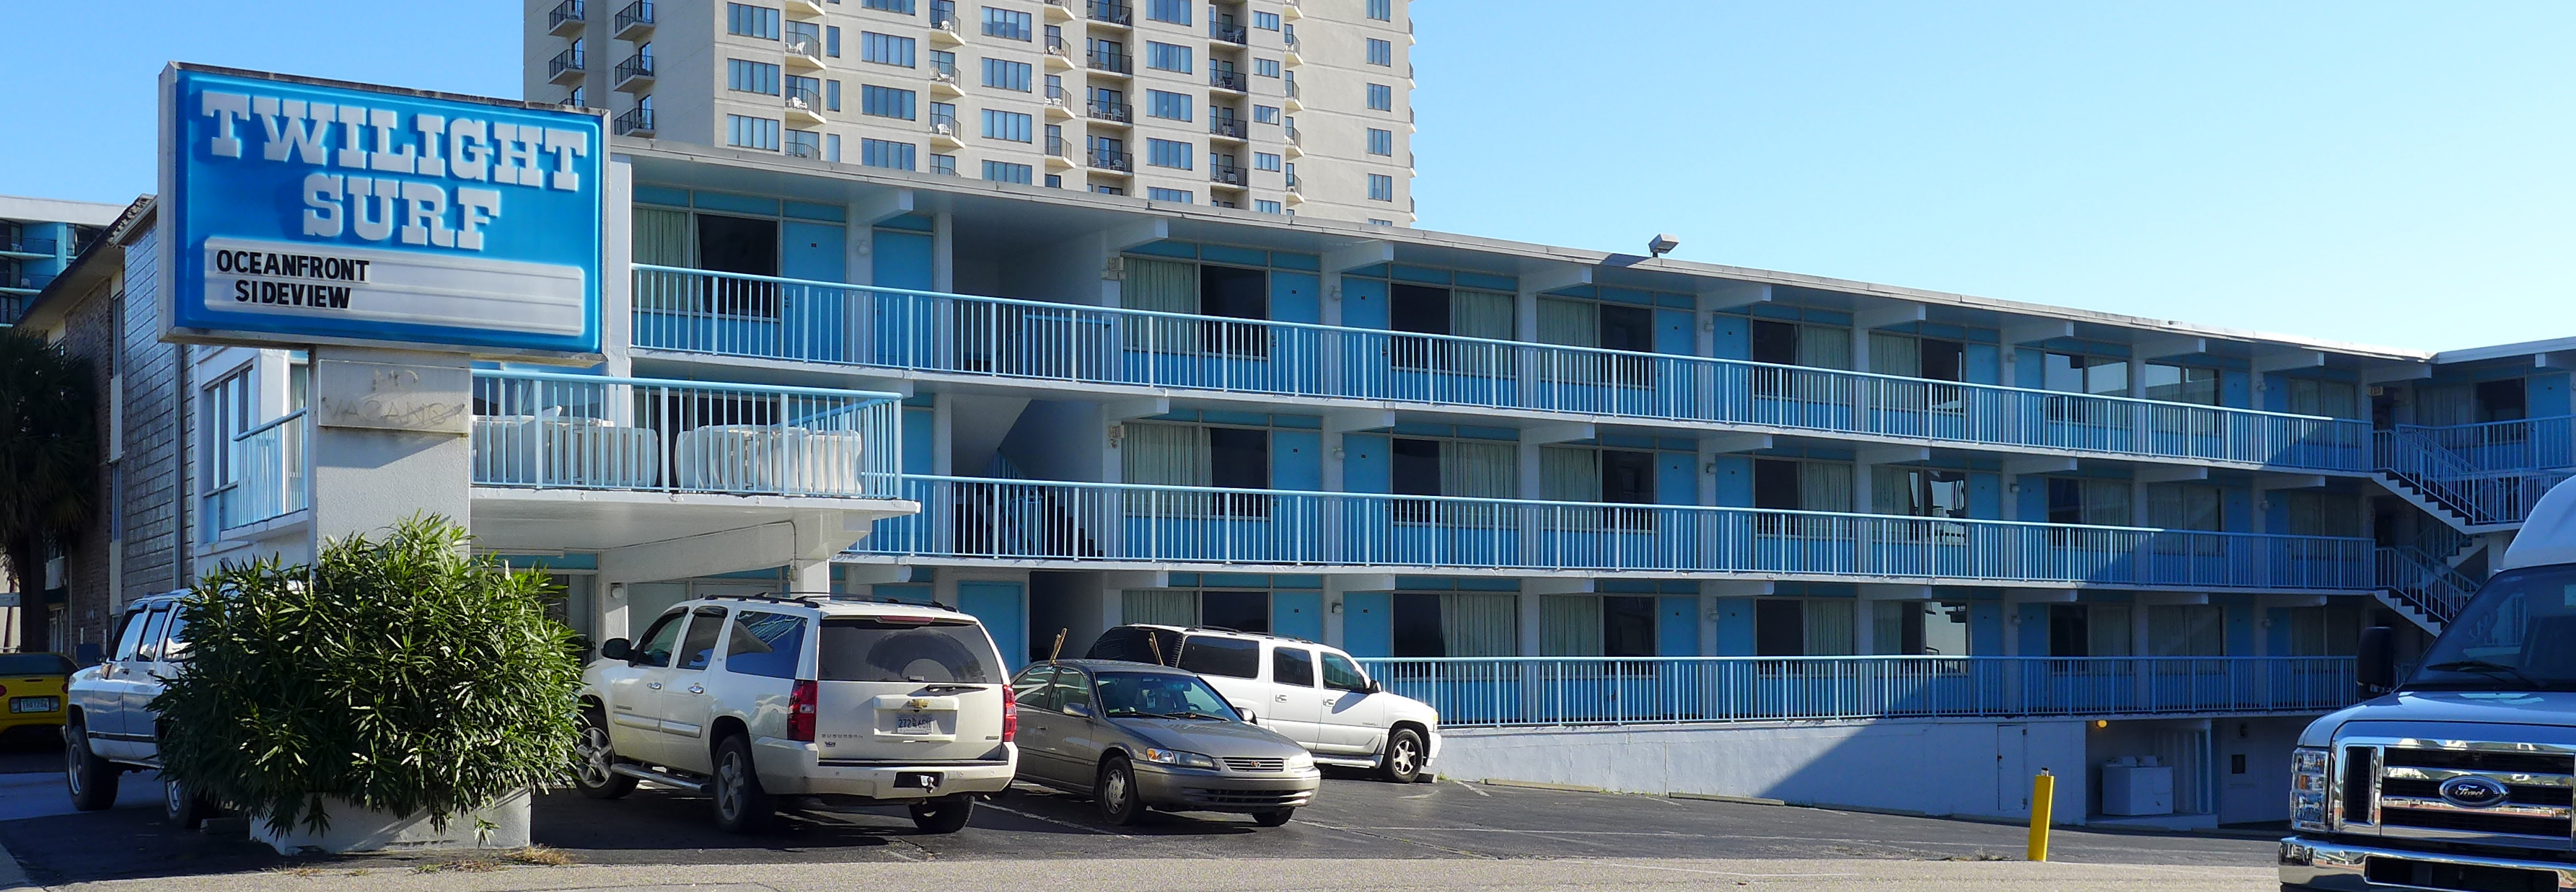 Myrtle Beach Motels That Have One Night